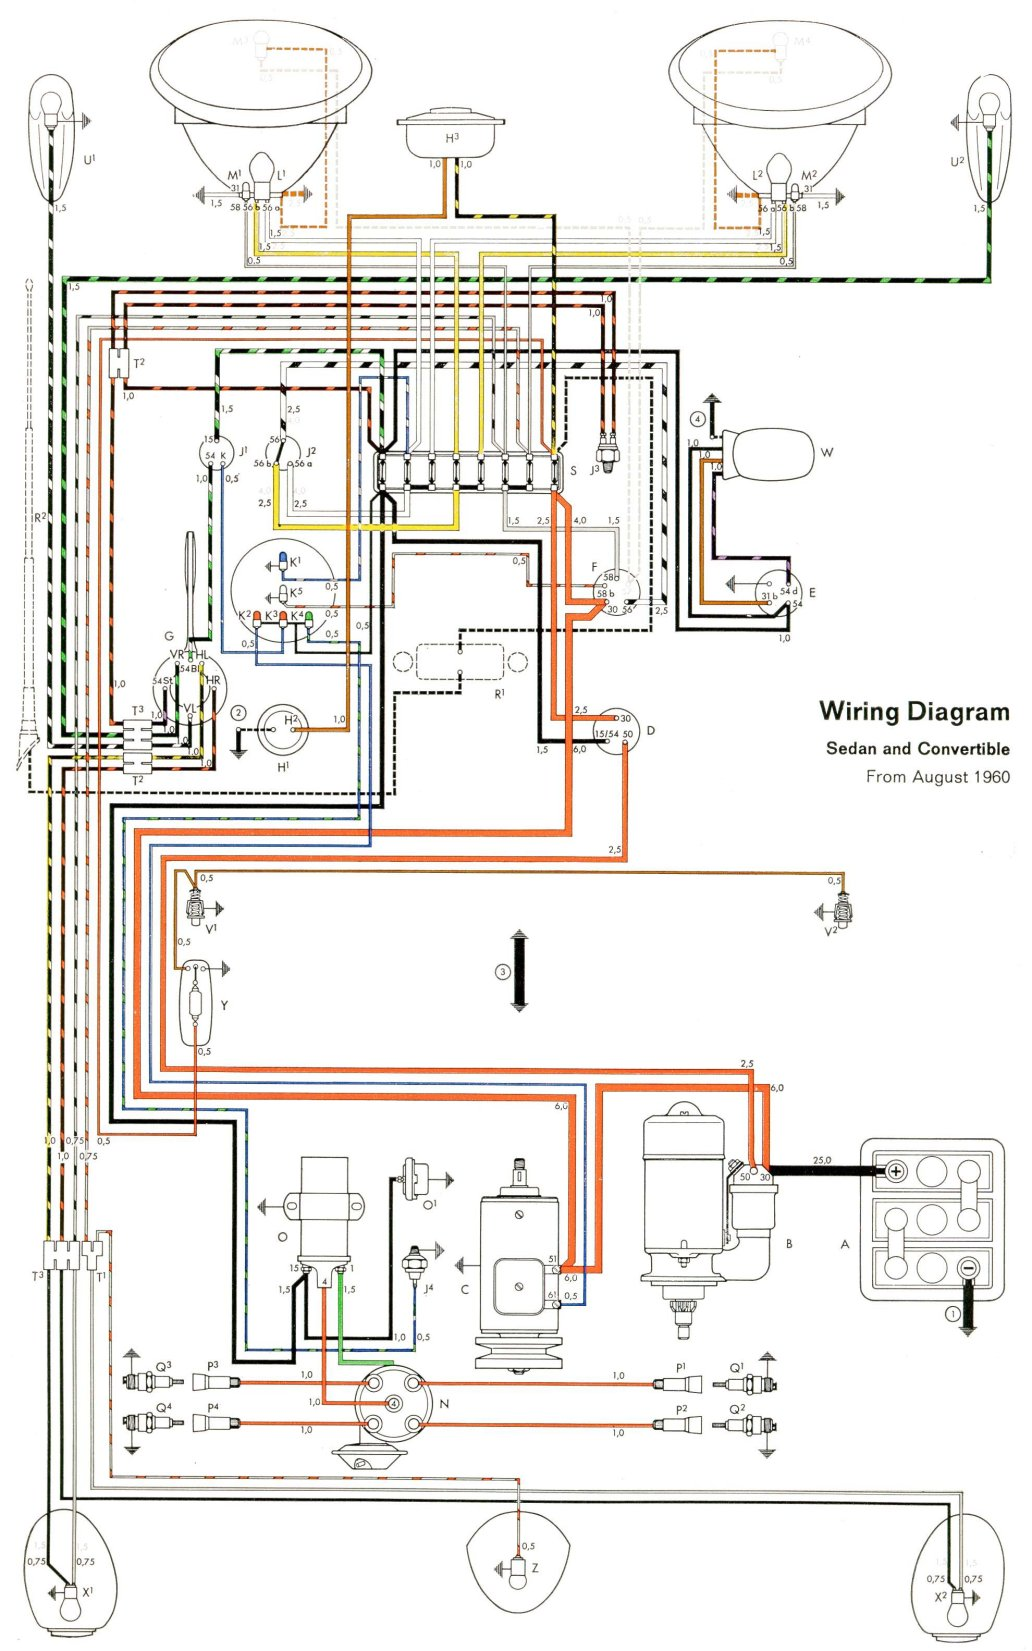 Type 1 Wiring Diagrams Air Cooled Vw Diagram